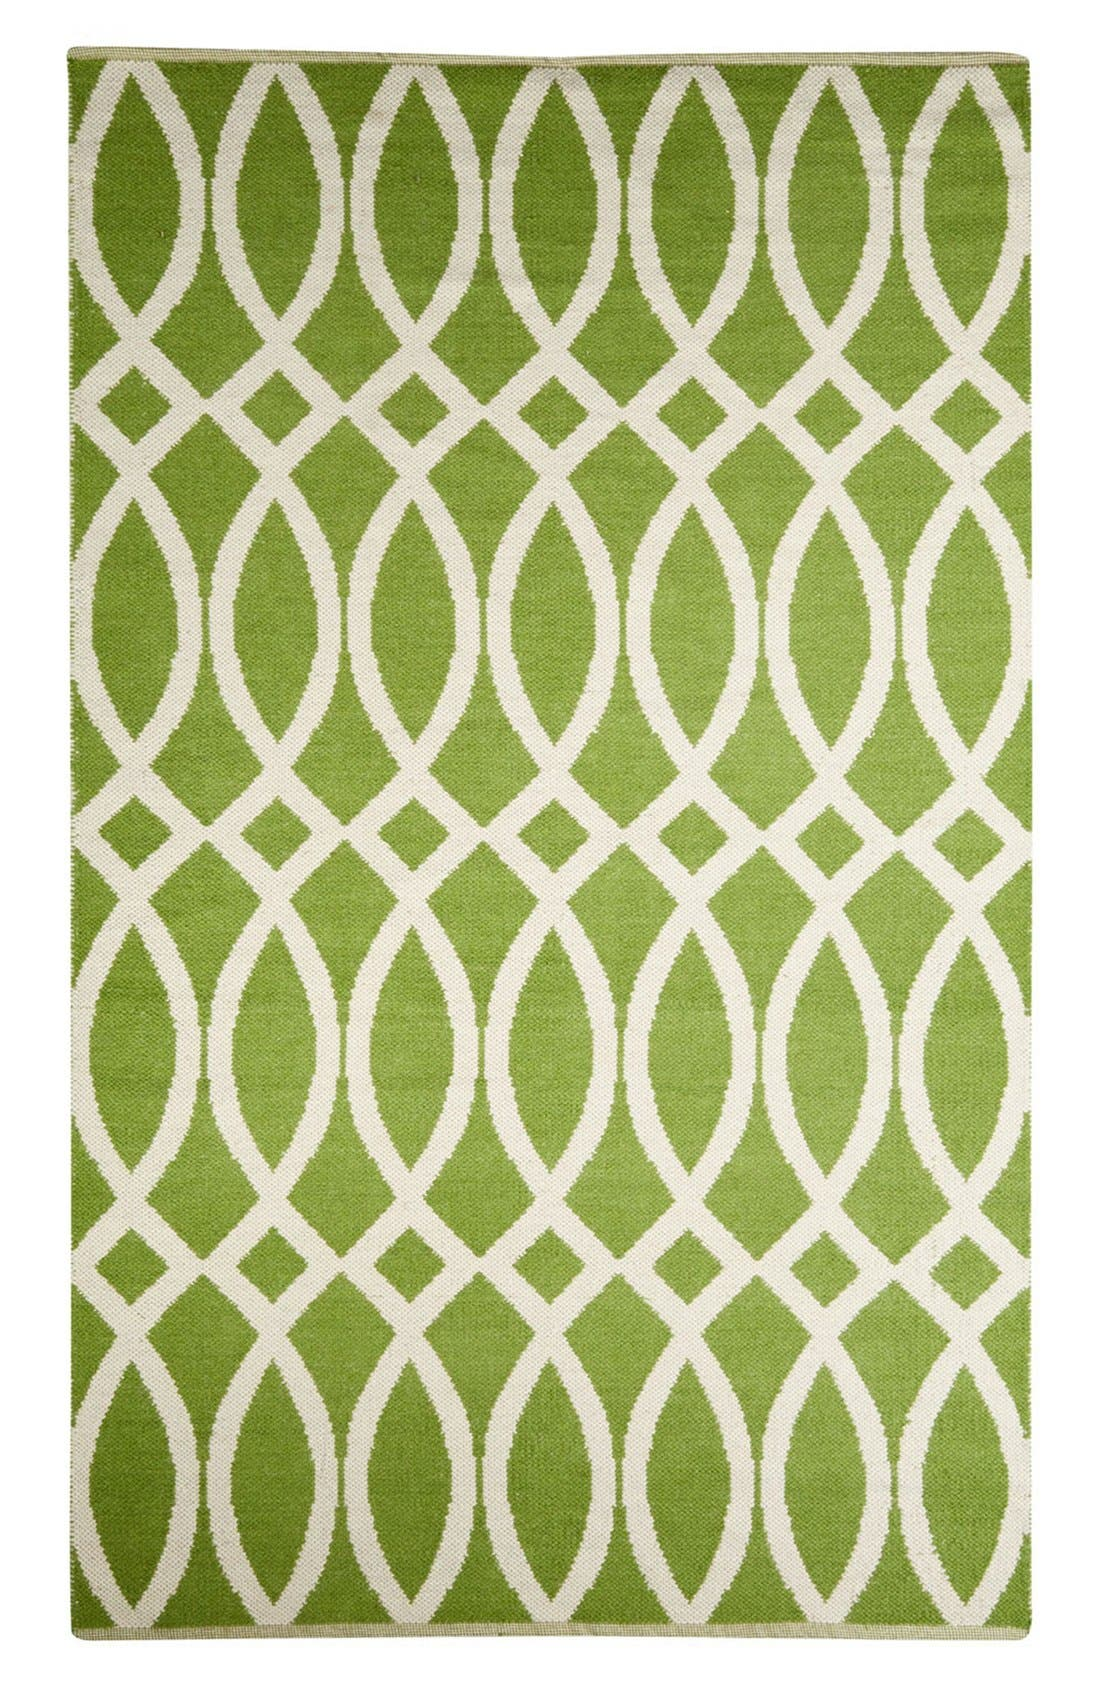 Alternate Image 1 Selected - kate spade new york 'roosevelt' hand woven reversible wool & cotton rug